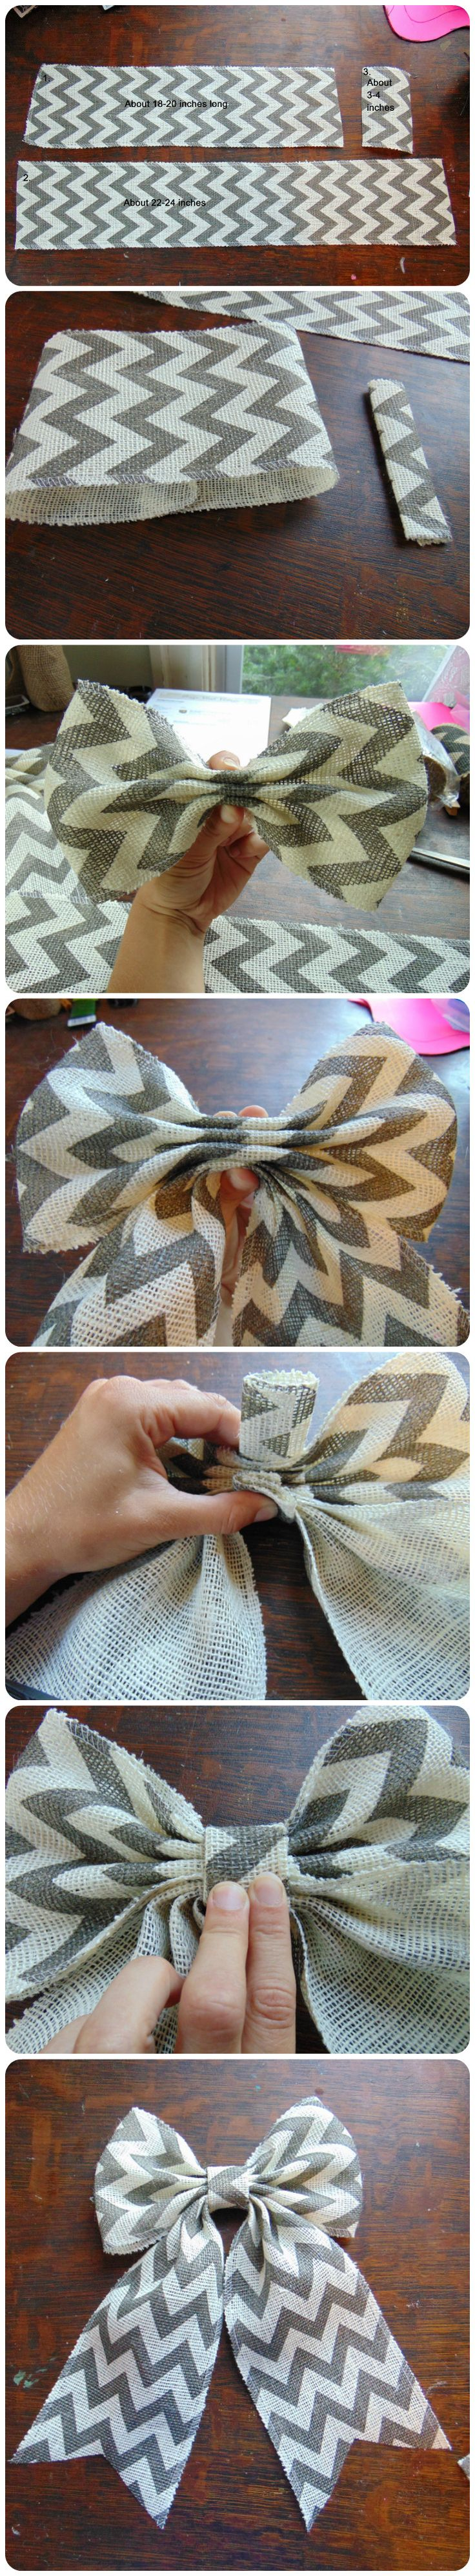 http://bridgecreekcottage.net/2015/08/19/burlap-bow-tutorial/ The perfect burlap bow tutorial. Found on bridge Creek Cottage